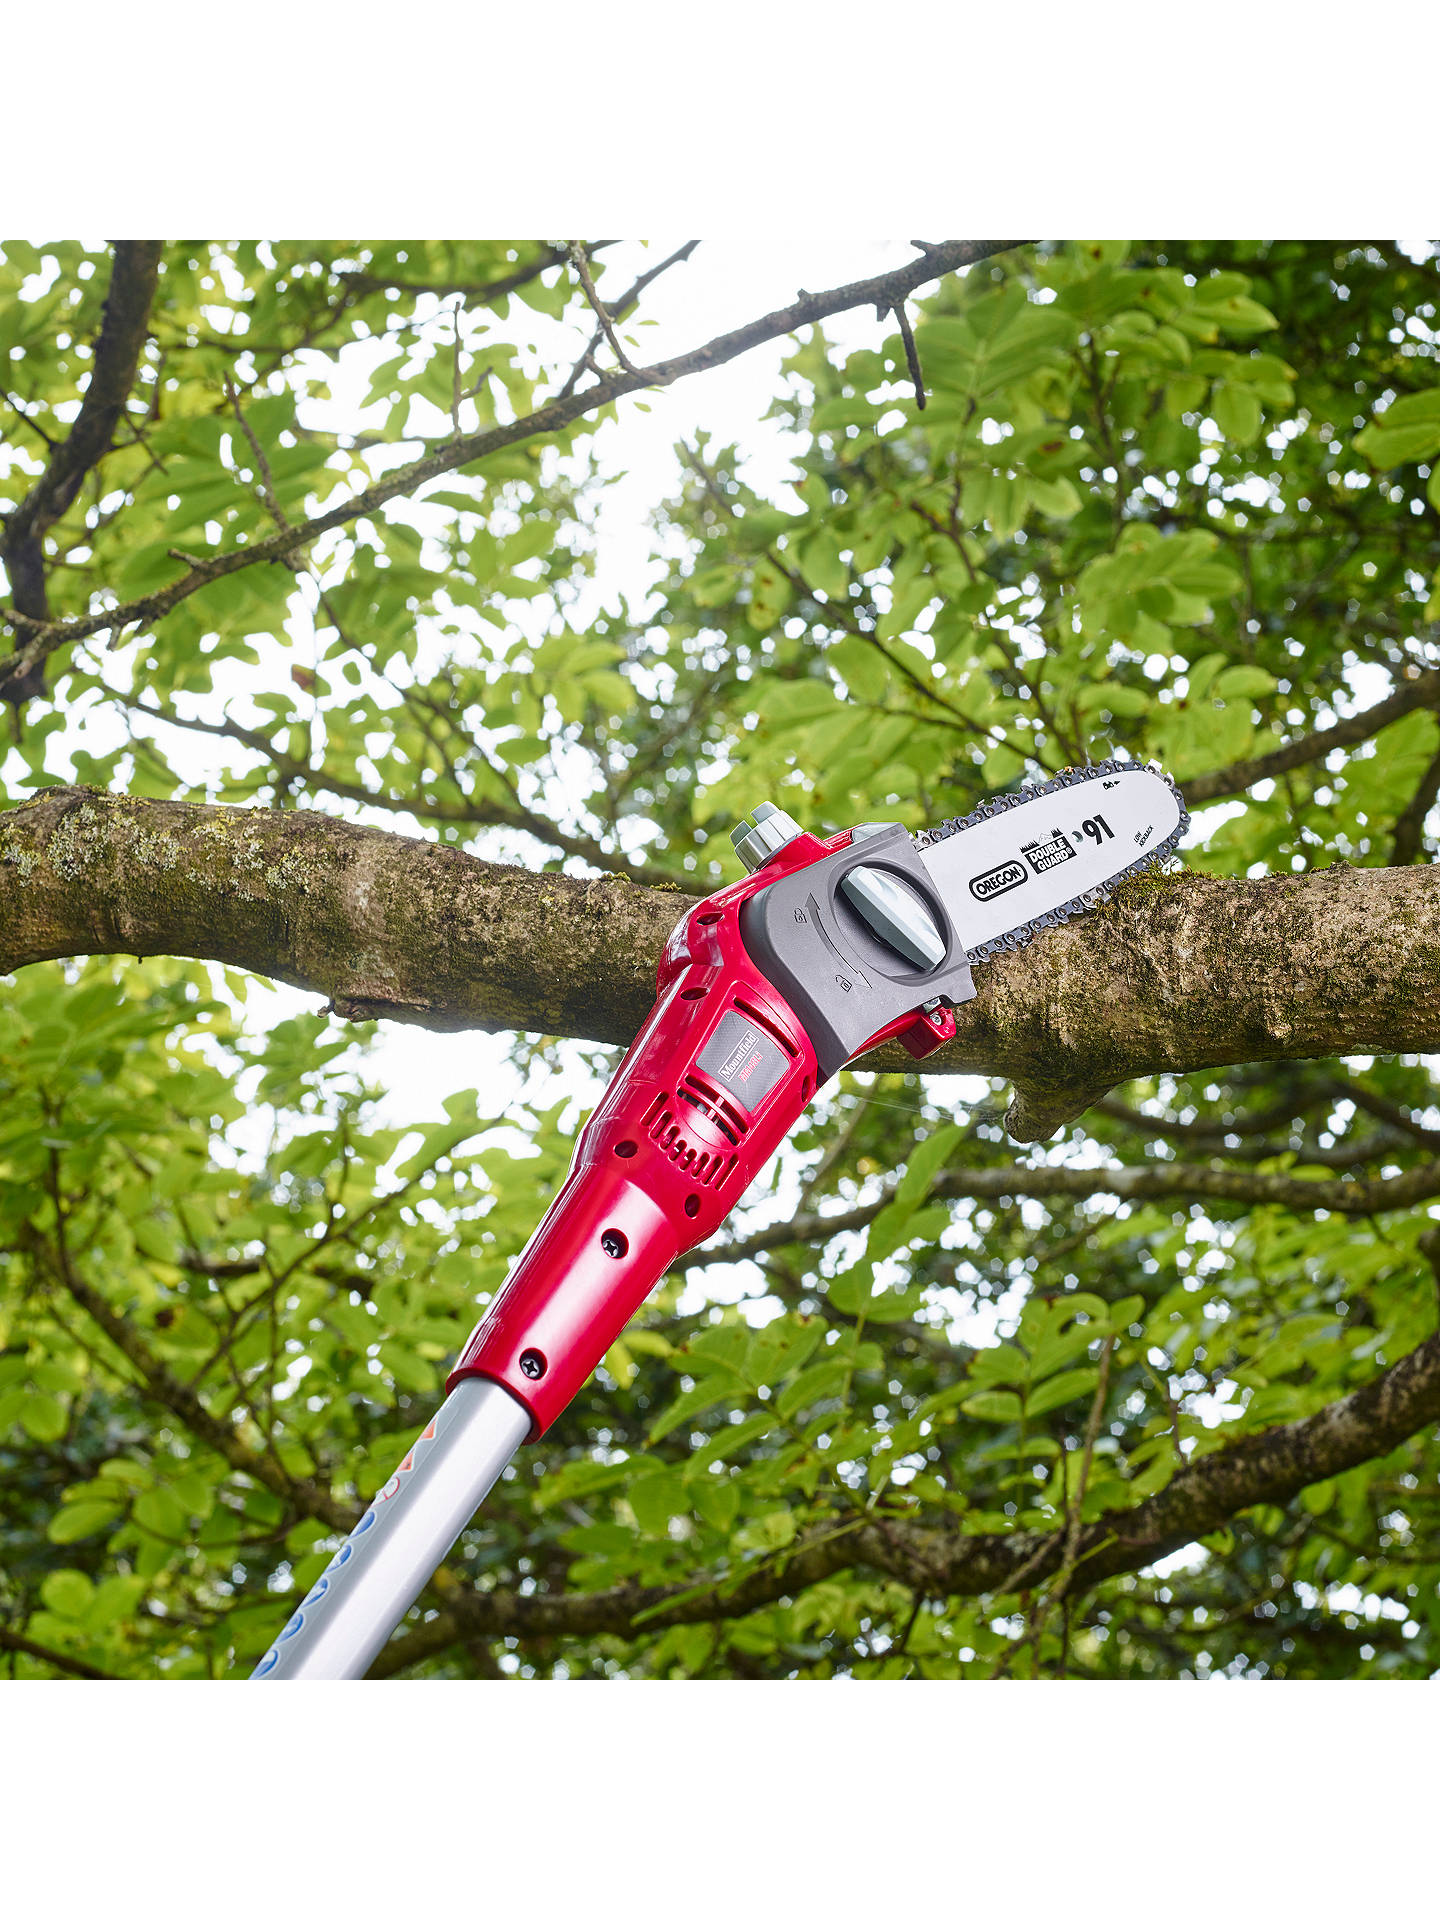 BuyMountfield MM48Li 48 Volt Lithium-Ion Cordless Pole Pruner & Hedge Trimmer Online at johnlewis.com